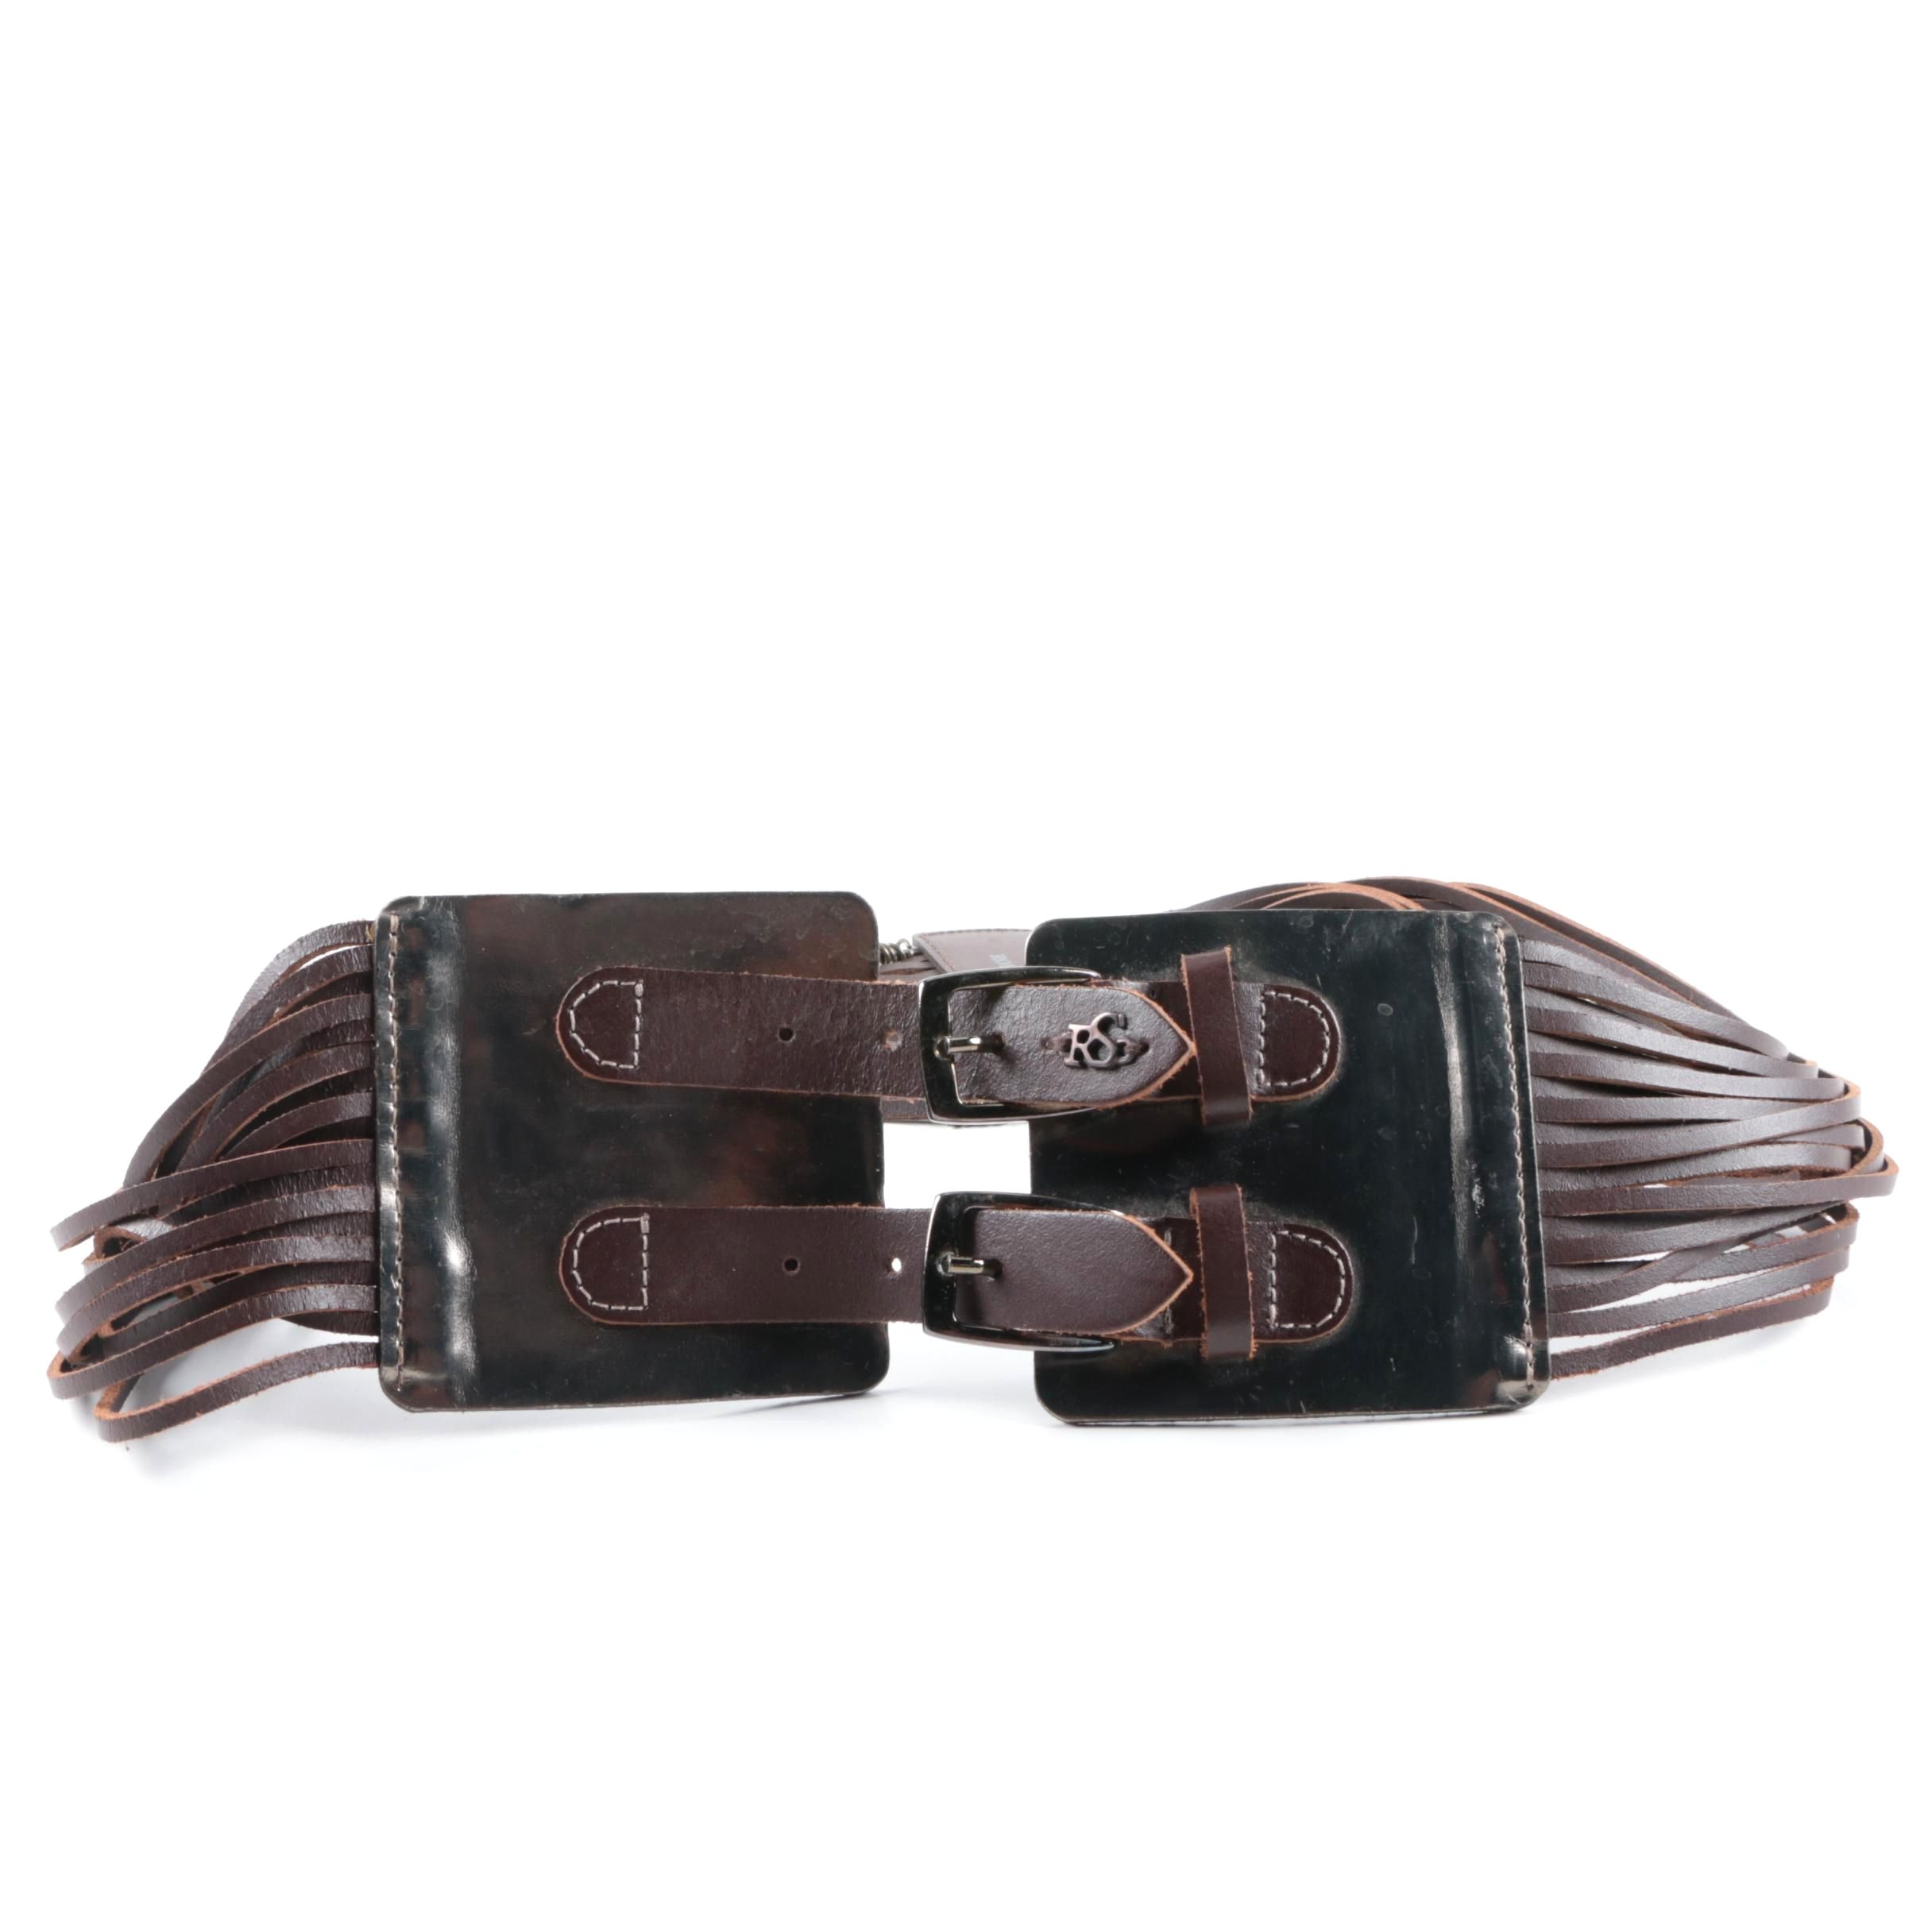 Women's Roberta Scarpa Leather and Metal Statement Belt